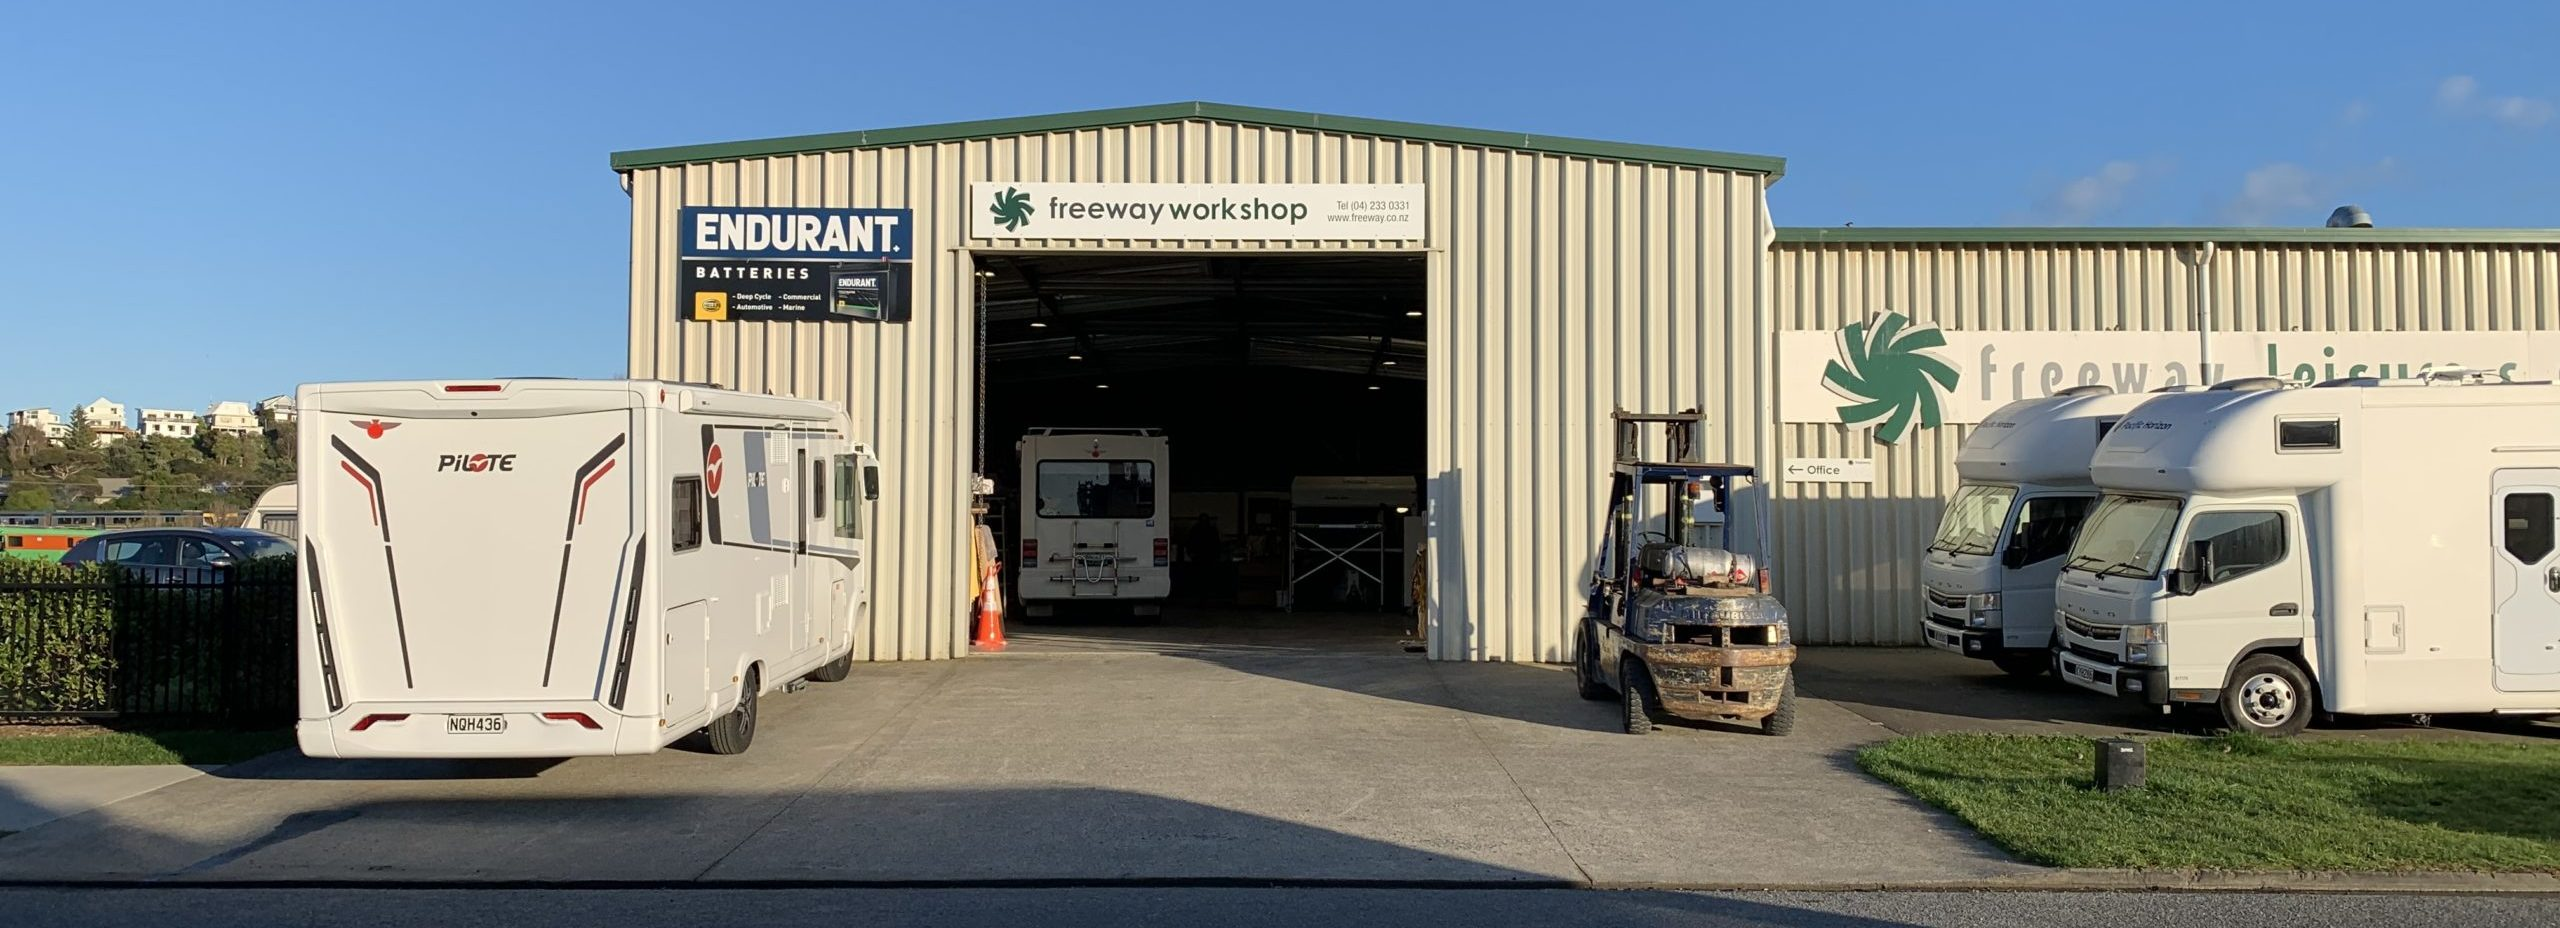 RV services and parts